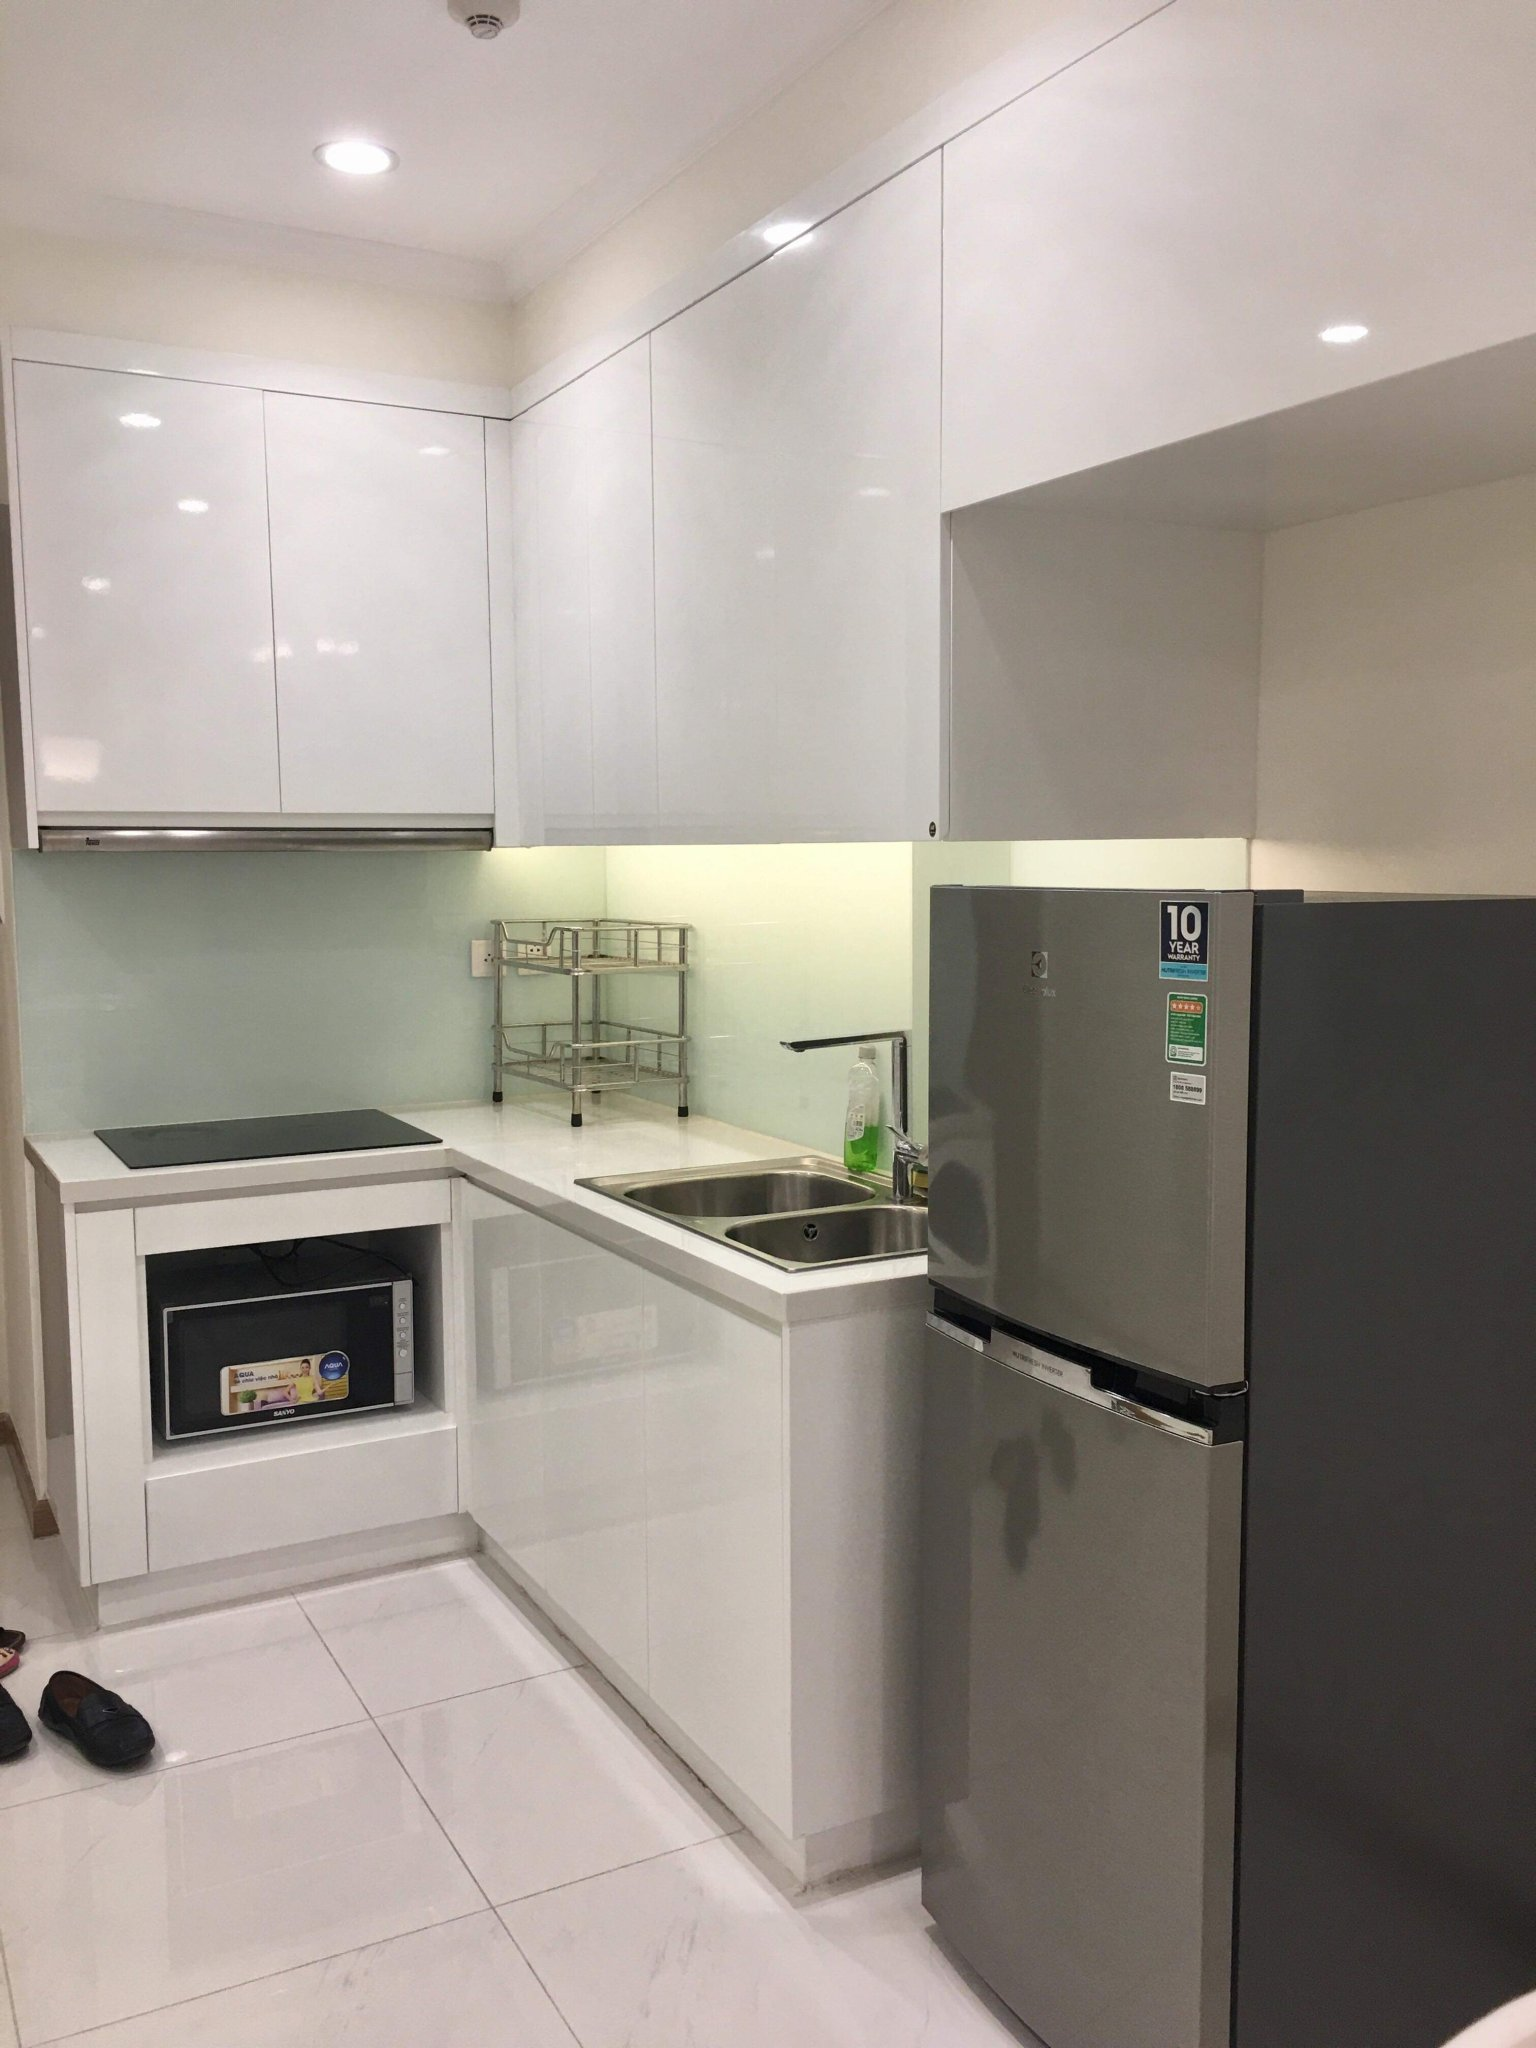 vinhomes central park apartment for rent in binh thanh district hcmc BT105P5291(3)